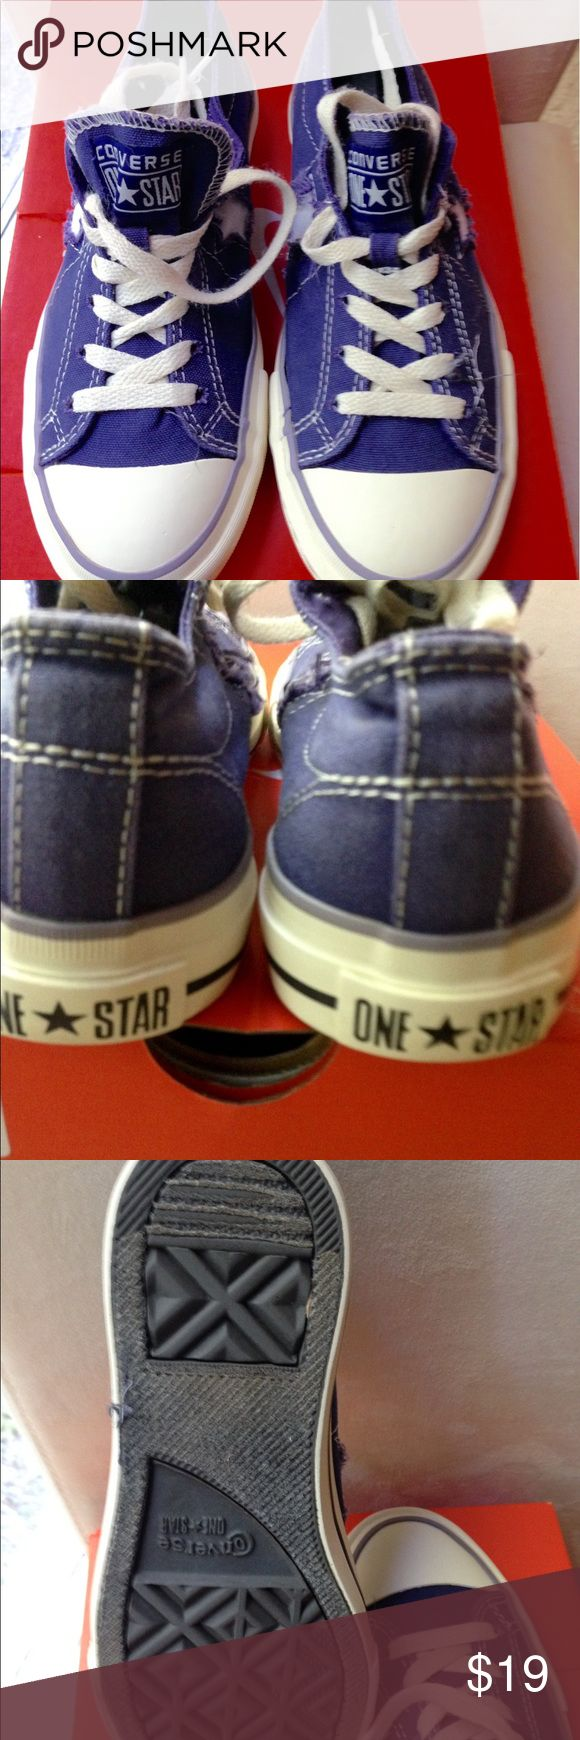 Converse One star purple sneakers size 7 Converse one star purple sneakers size 7 in excellent very clean condition Converse Shoes Sneakers